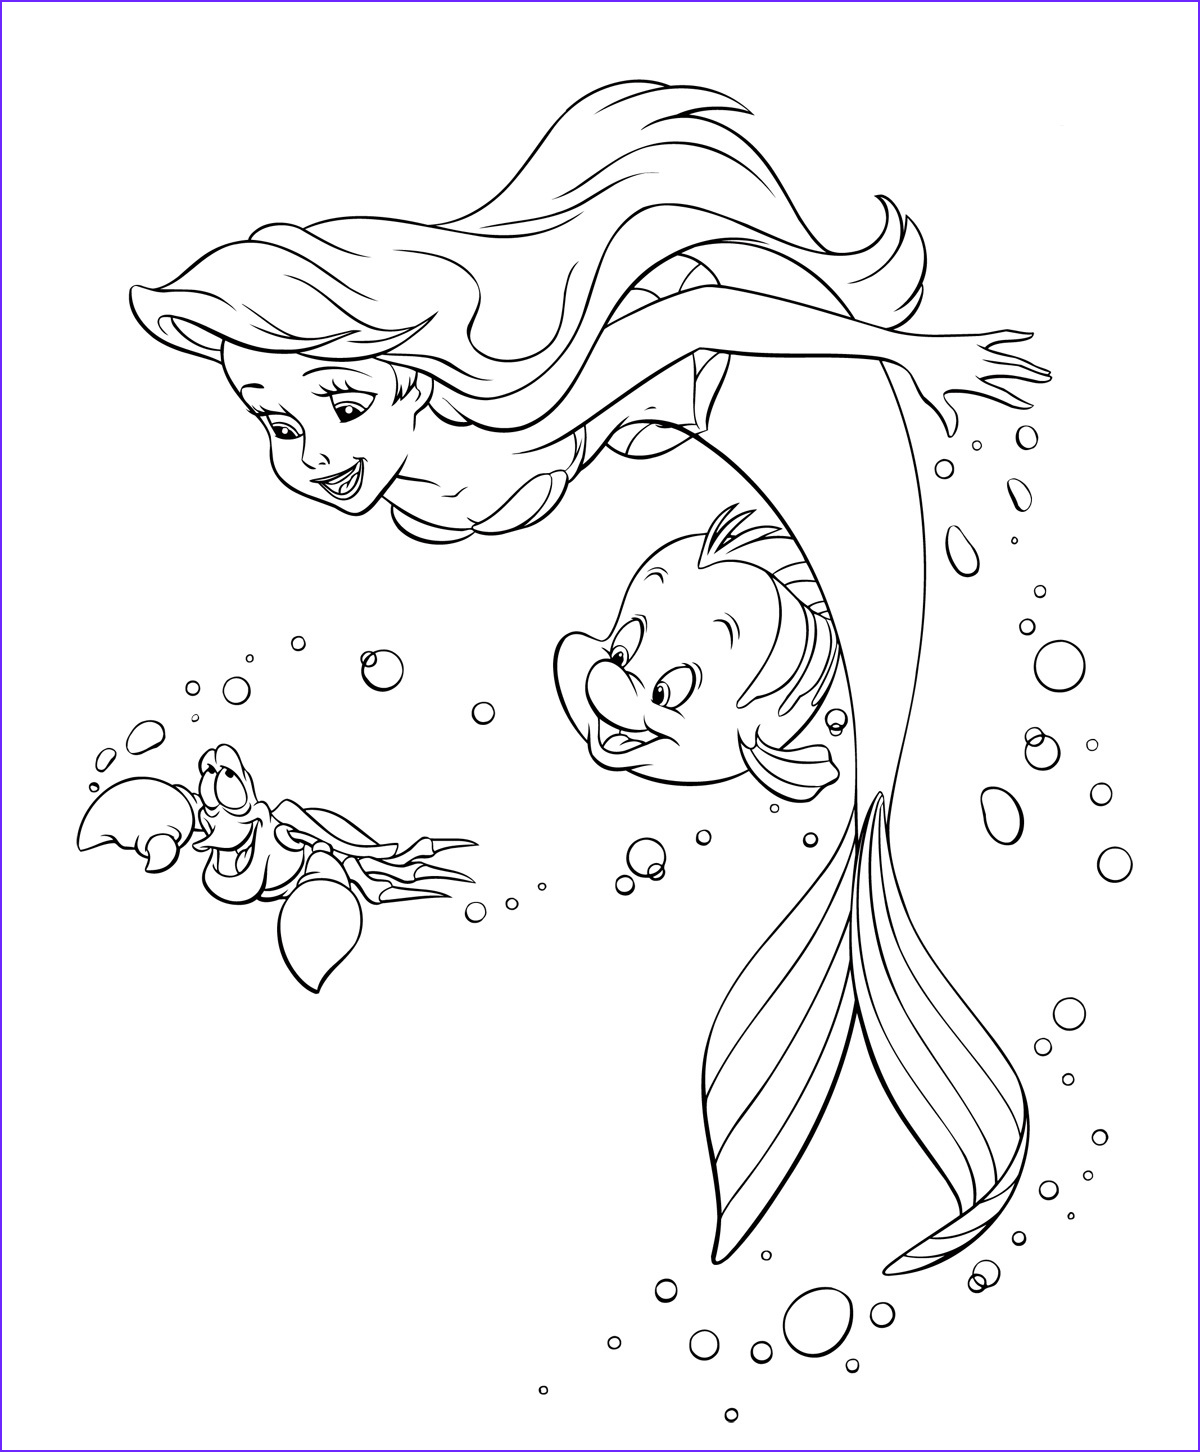 Mermaid Coloring Pages Inspirational Images Ariel the Little Mermaid Coloring Pages for Girls to Print